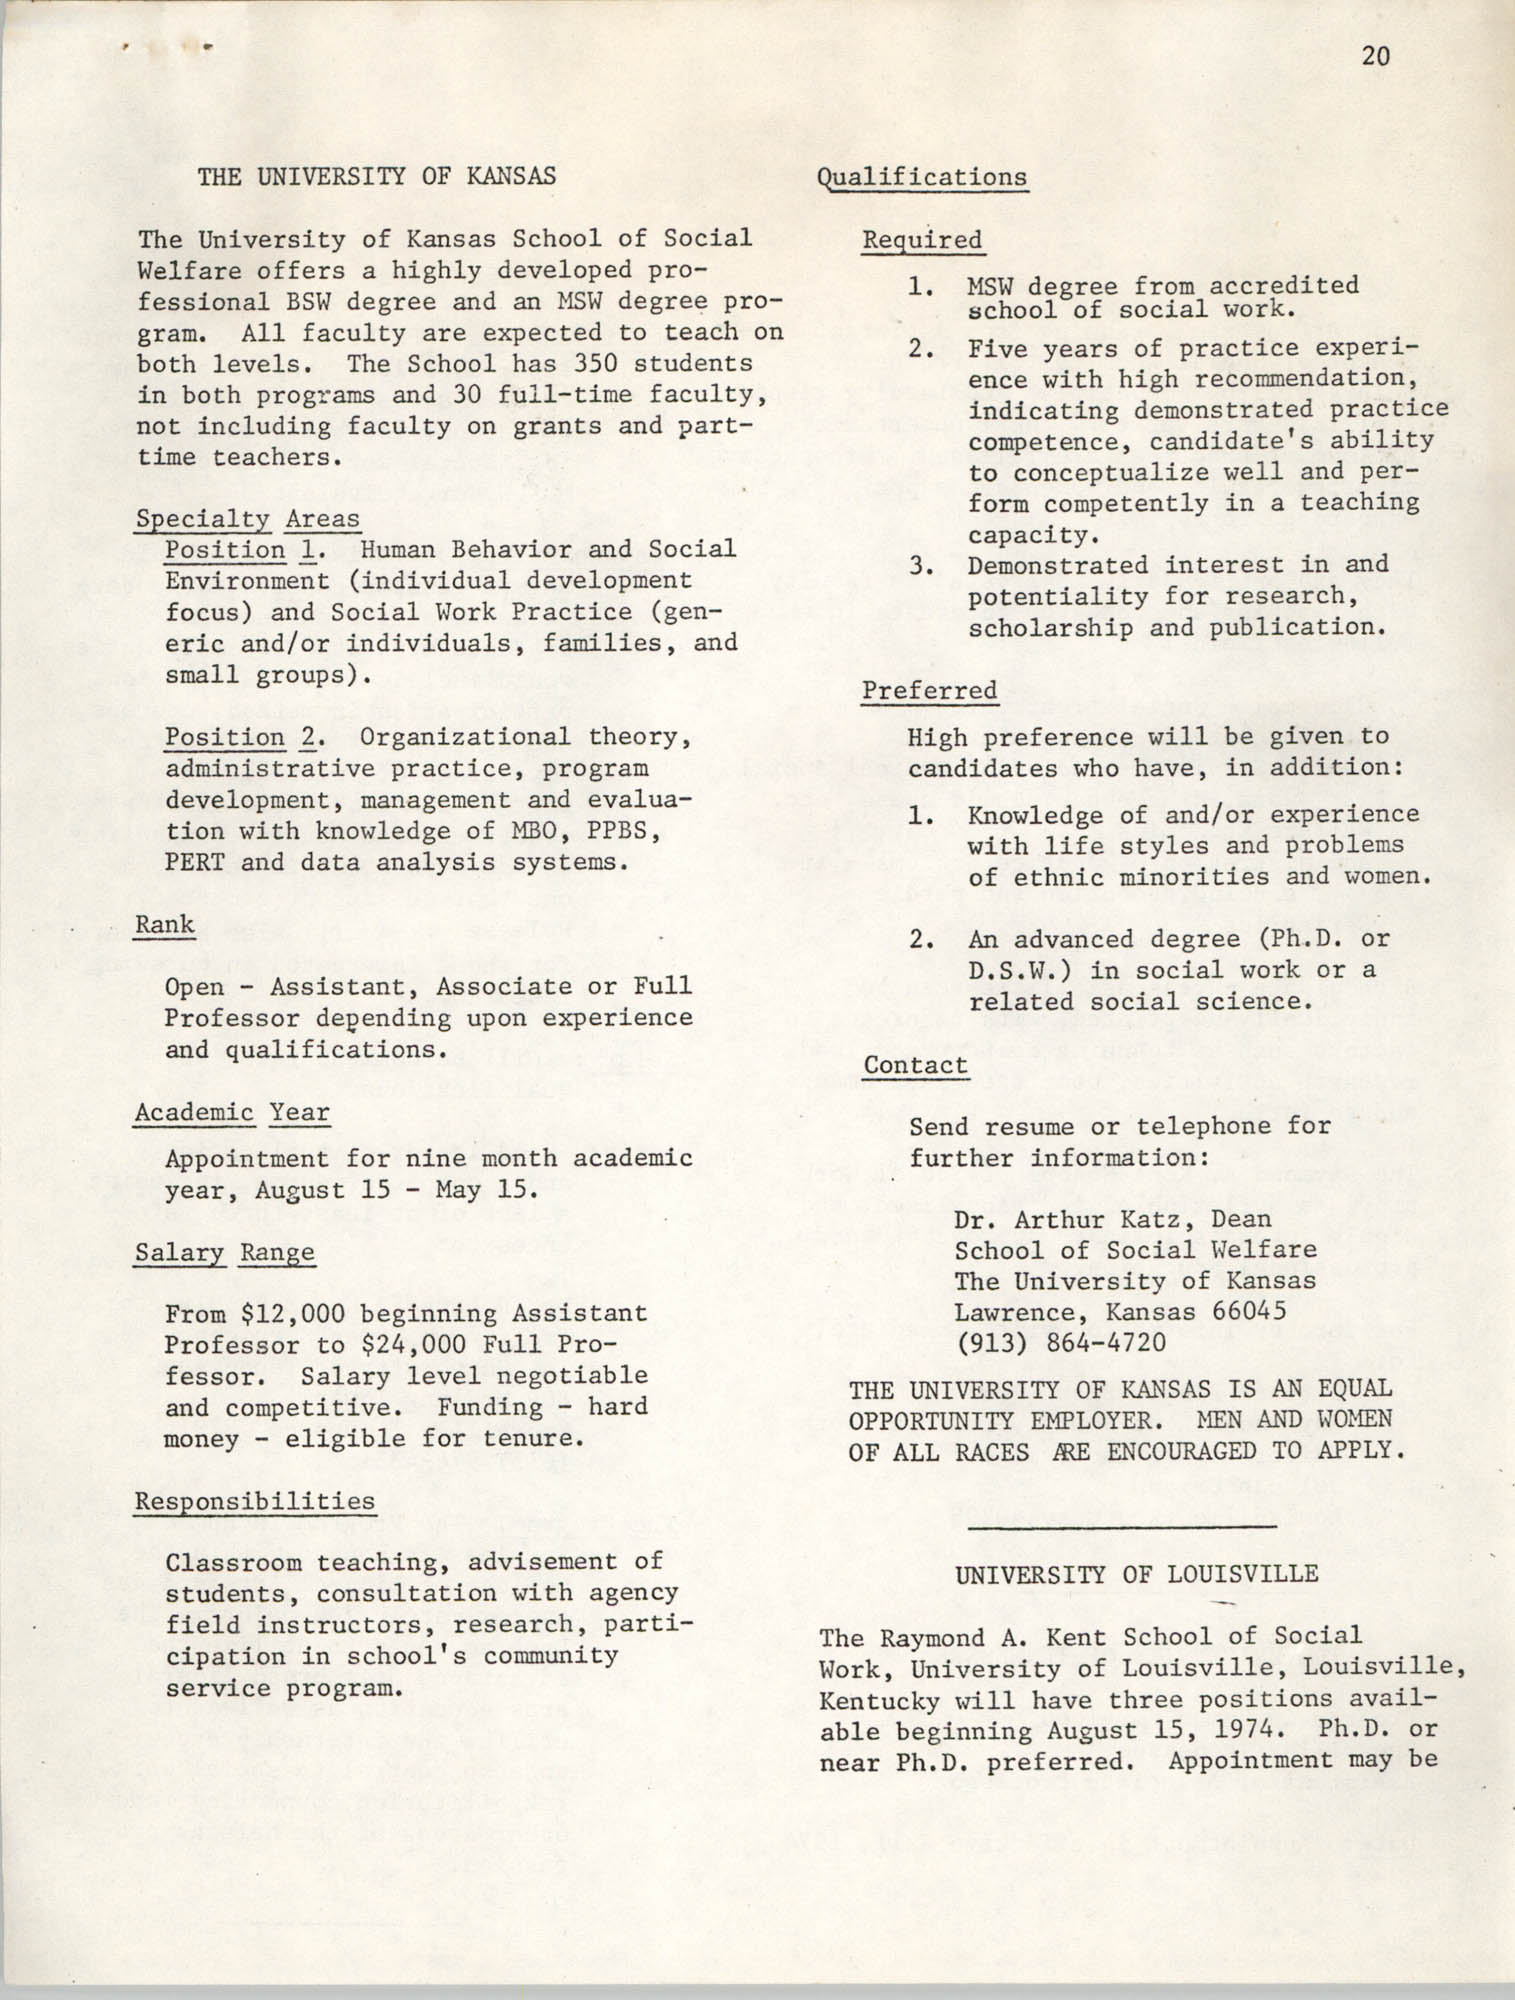 SHARE, Volume II, Number 3, March 1974, Page 20